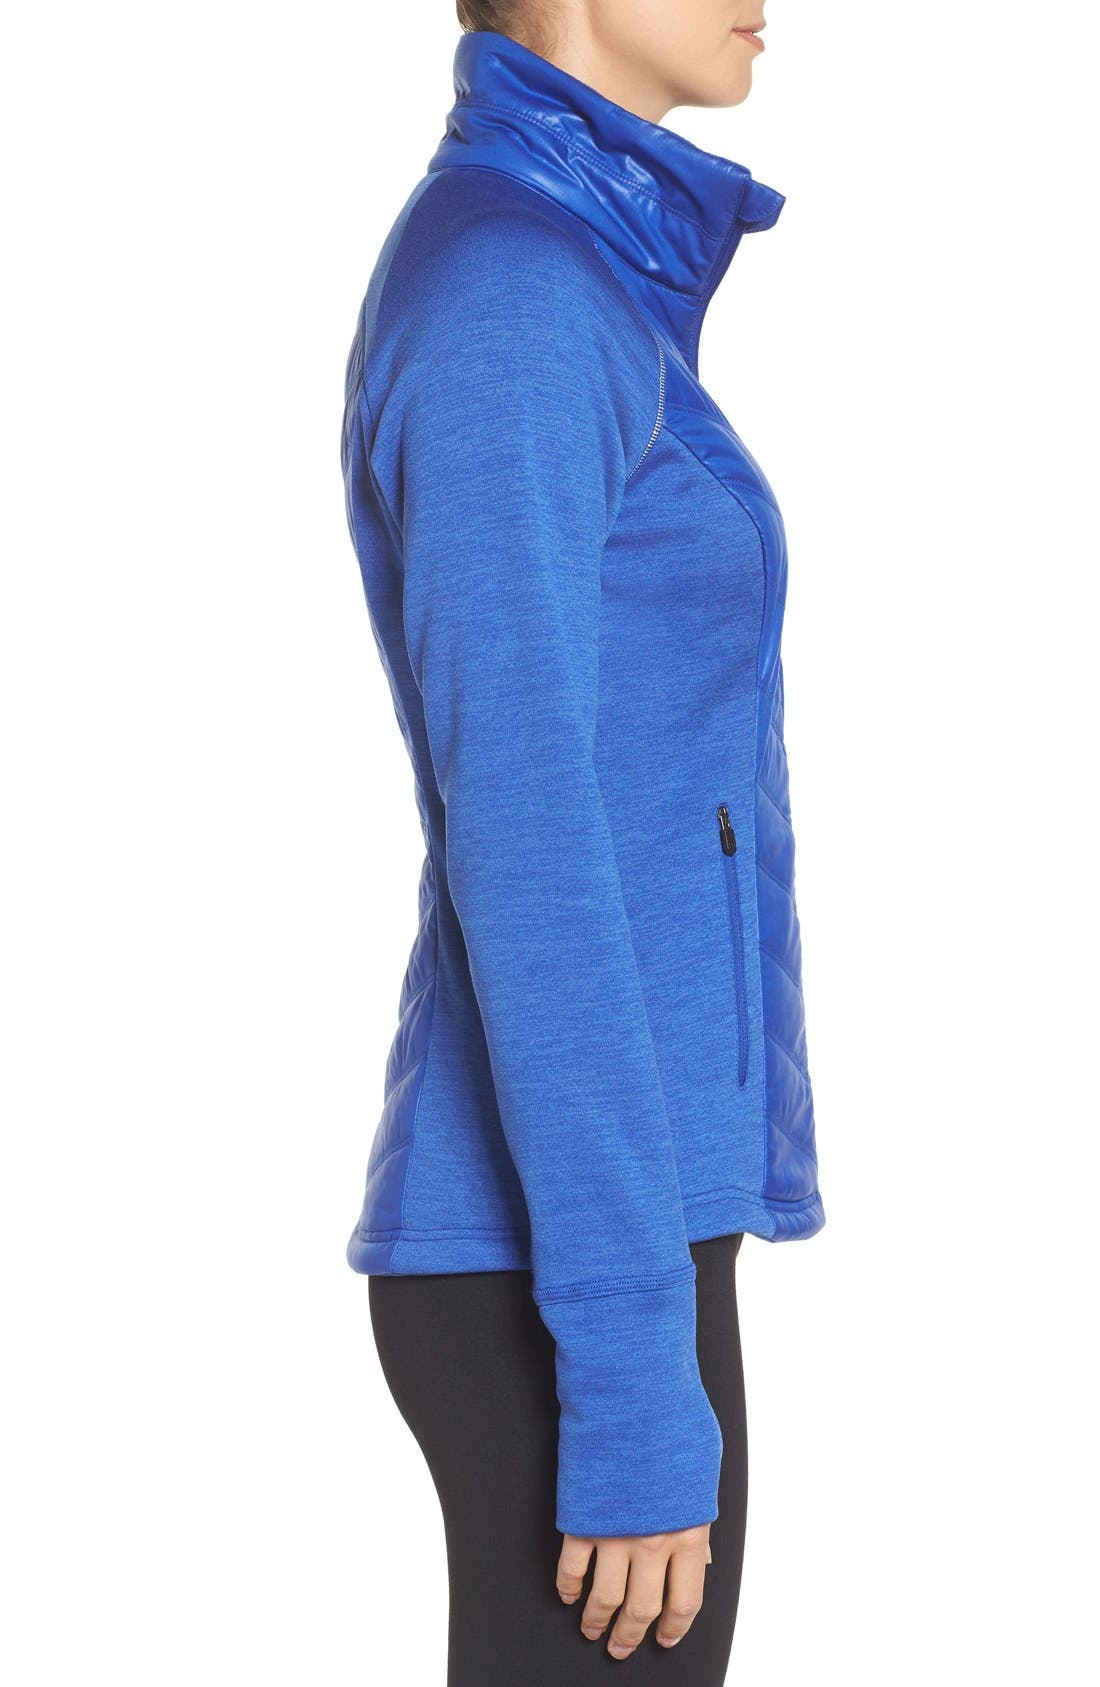 Zelfusion Reflective Quilted Jacket,                             Alternate thumbnail 26, color,